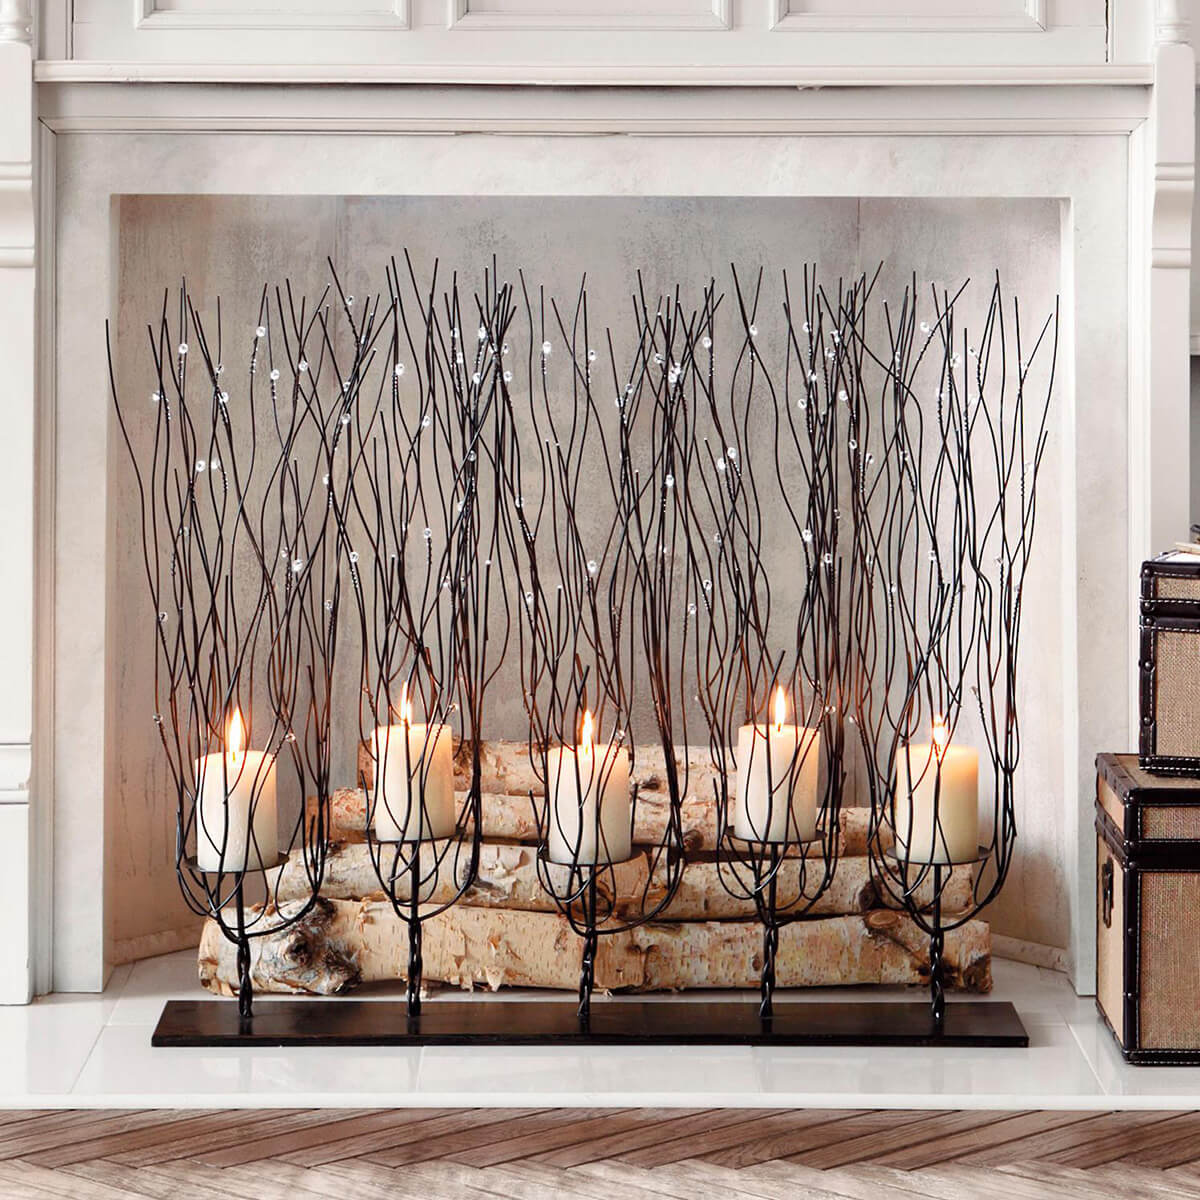 Candles, Twigs and Crystals in a Fireplace